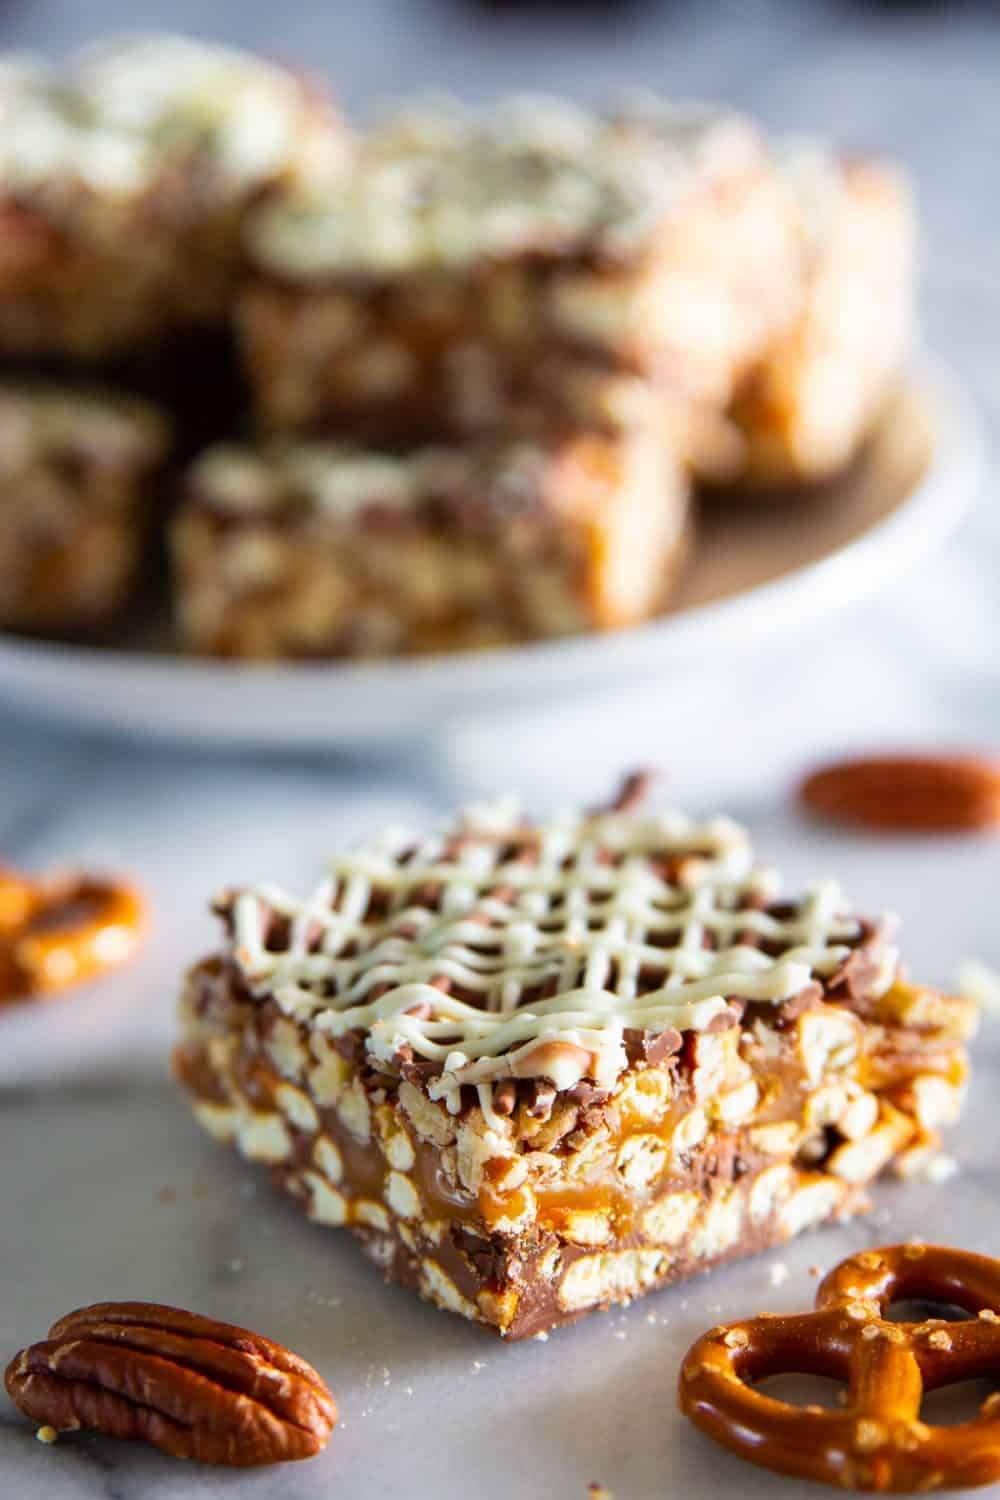 Chocolate Caramel Pretzels bars are a perfect combination of salty and sweet to satisfy your cravings.